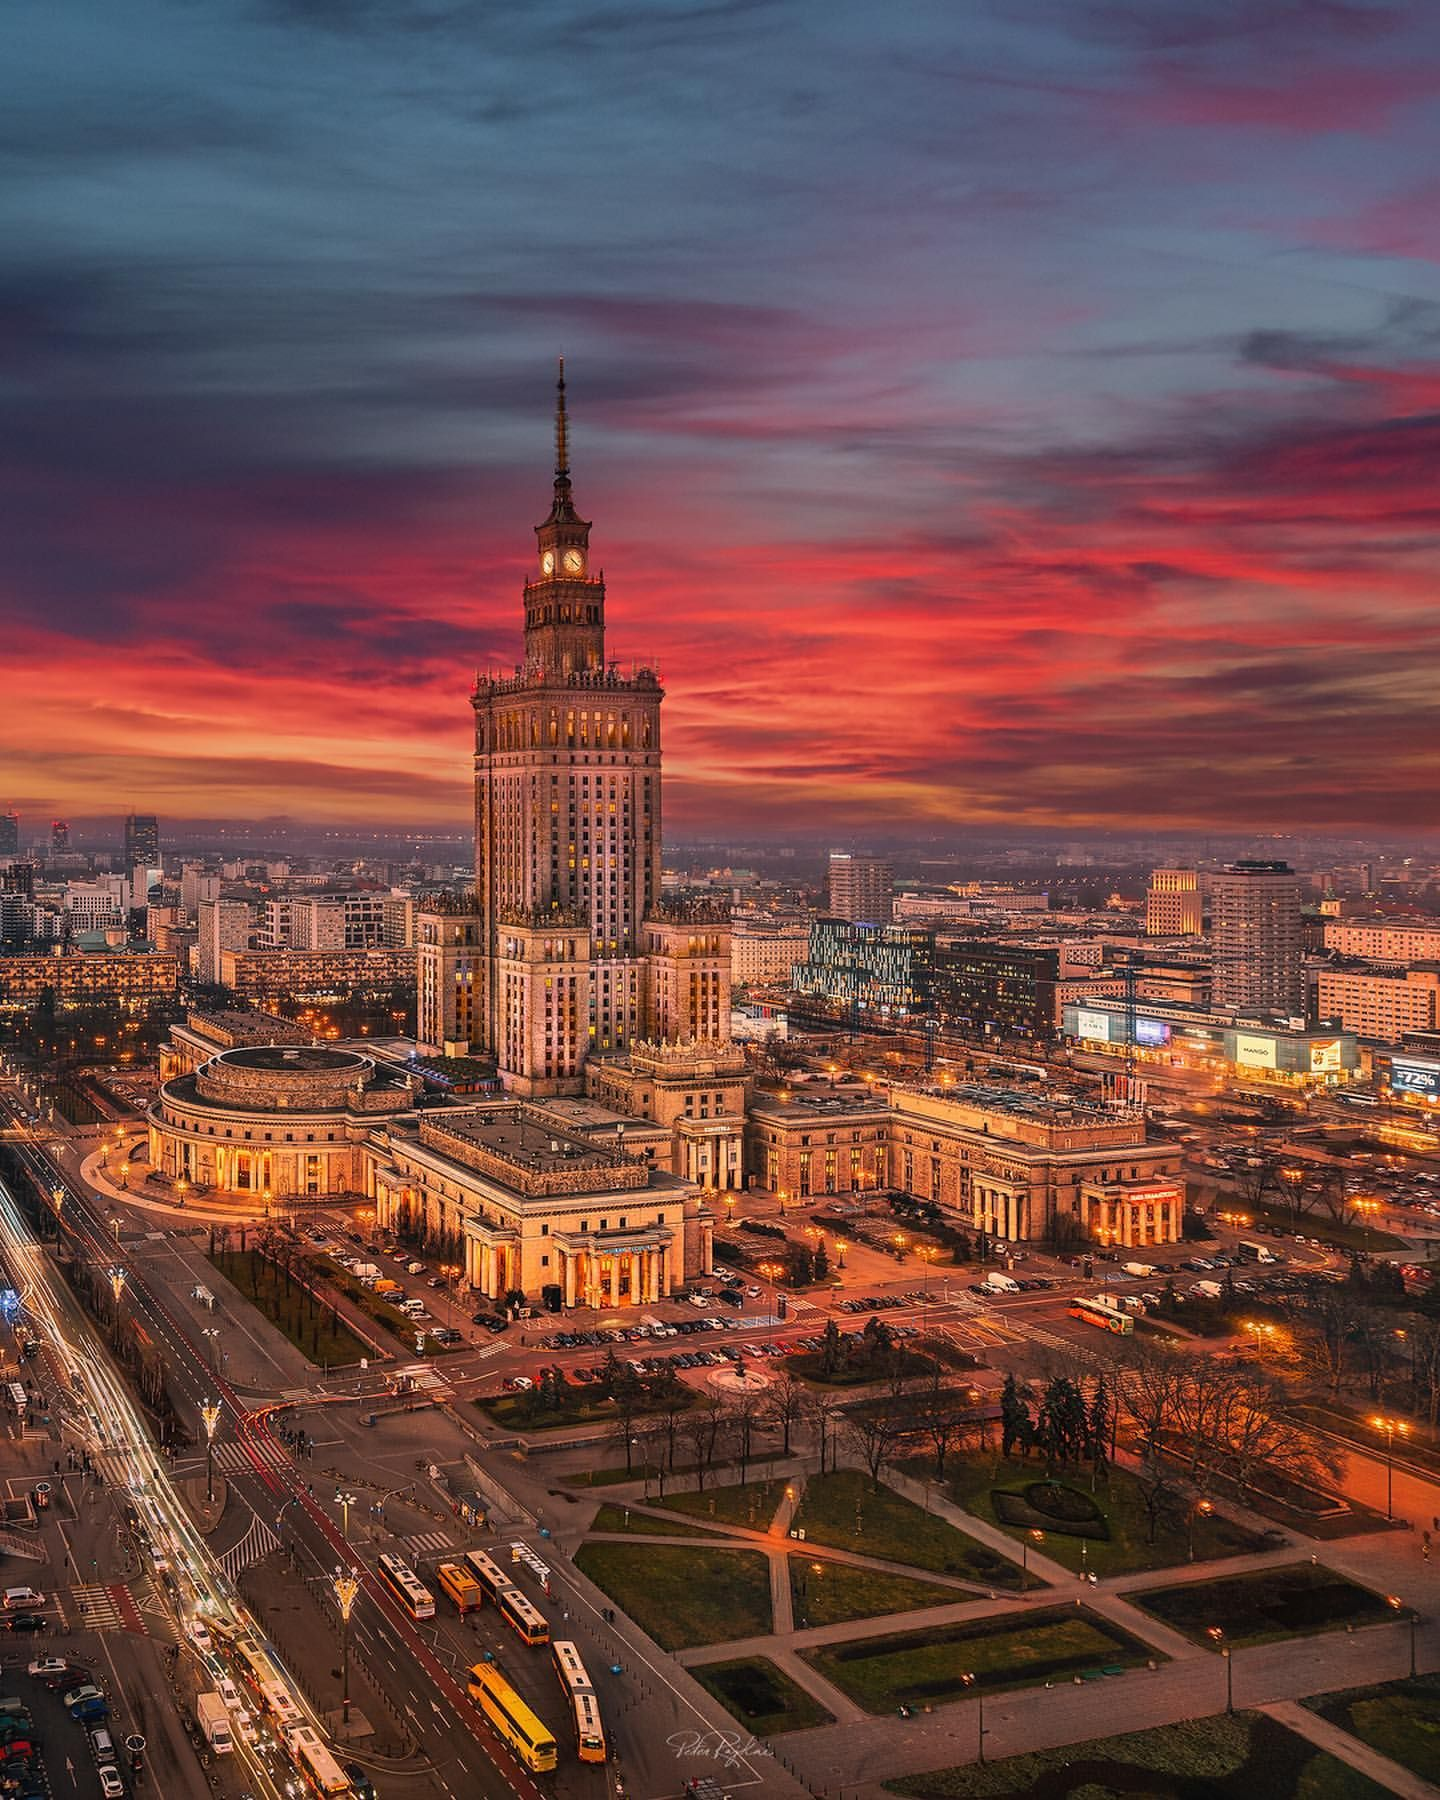 Warsaw Poland - Architecture and Urban Living - Modern and Historical Buildings - City Planning - Travel Photography Destinations - Amazing Beautiful Places